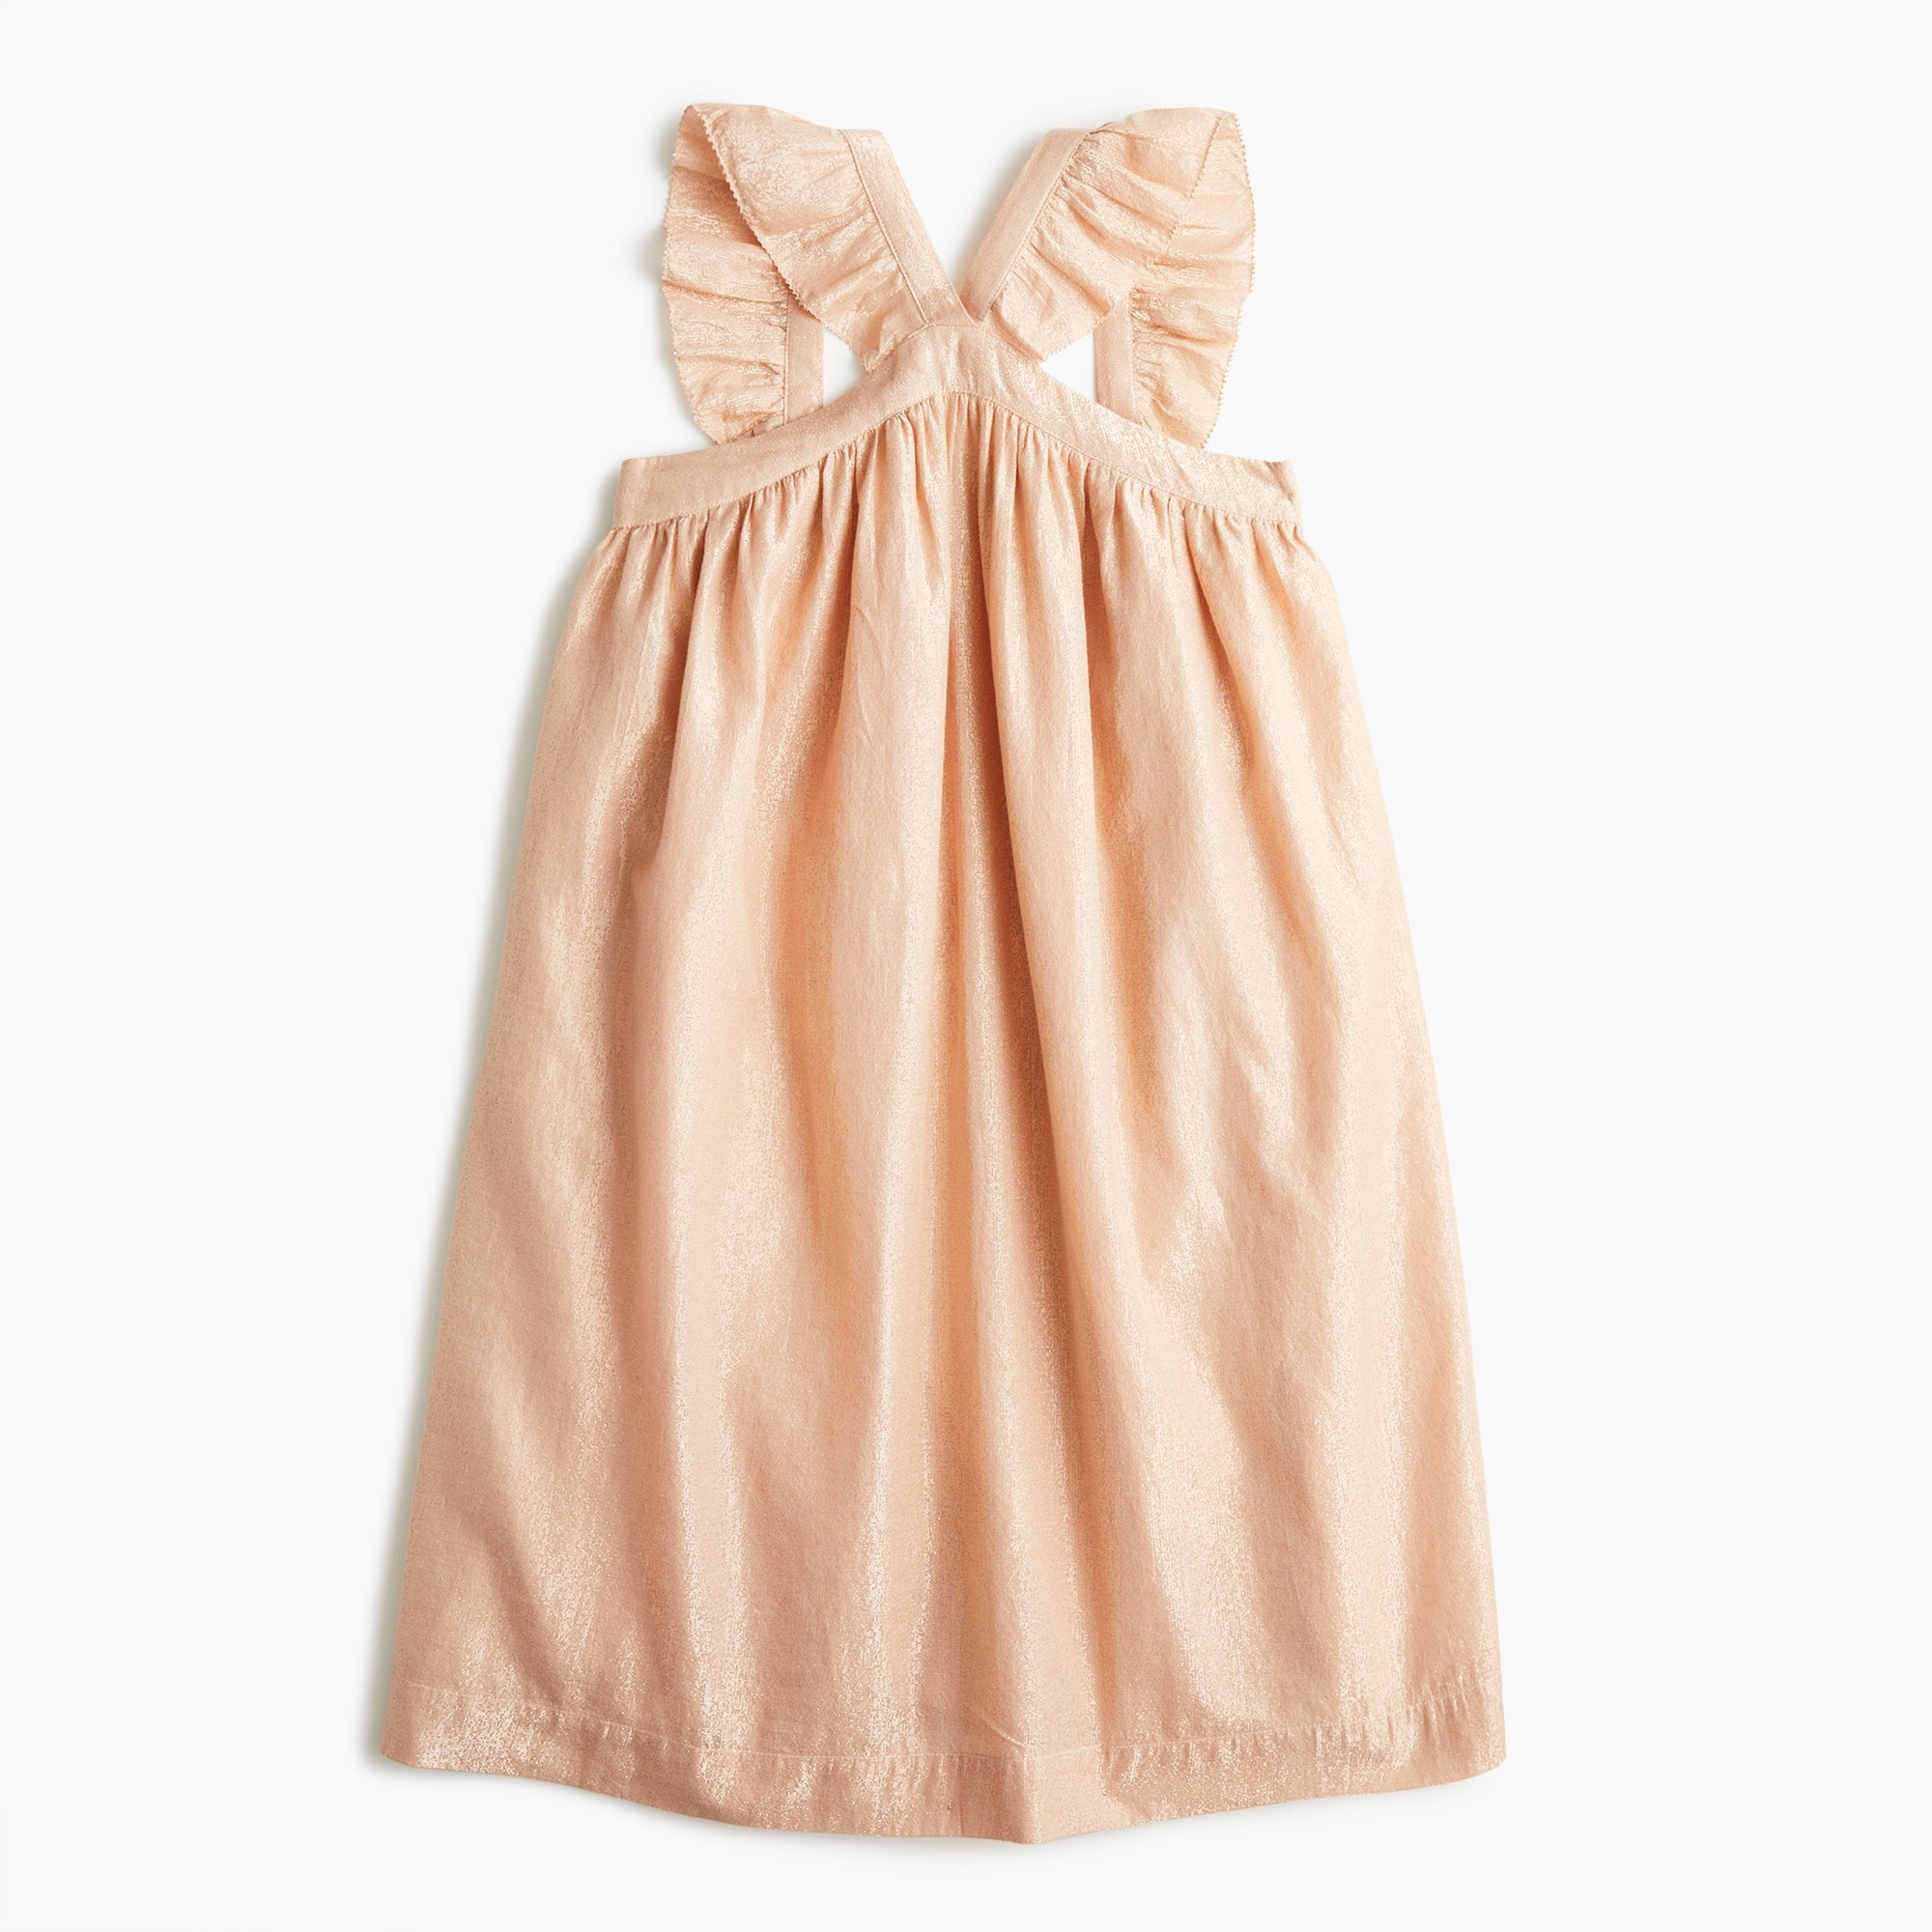 Girls' ruffle-strap dress